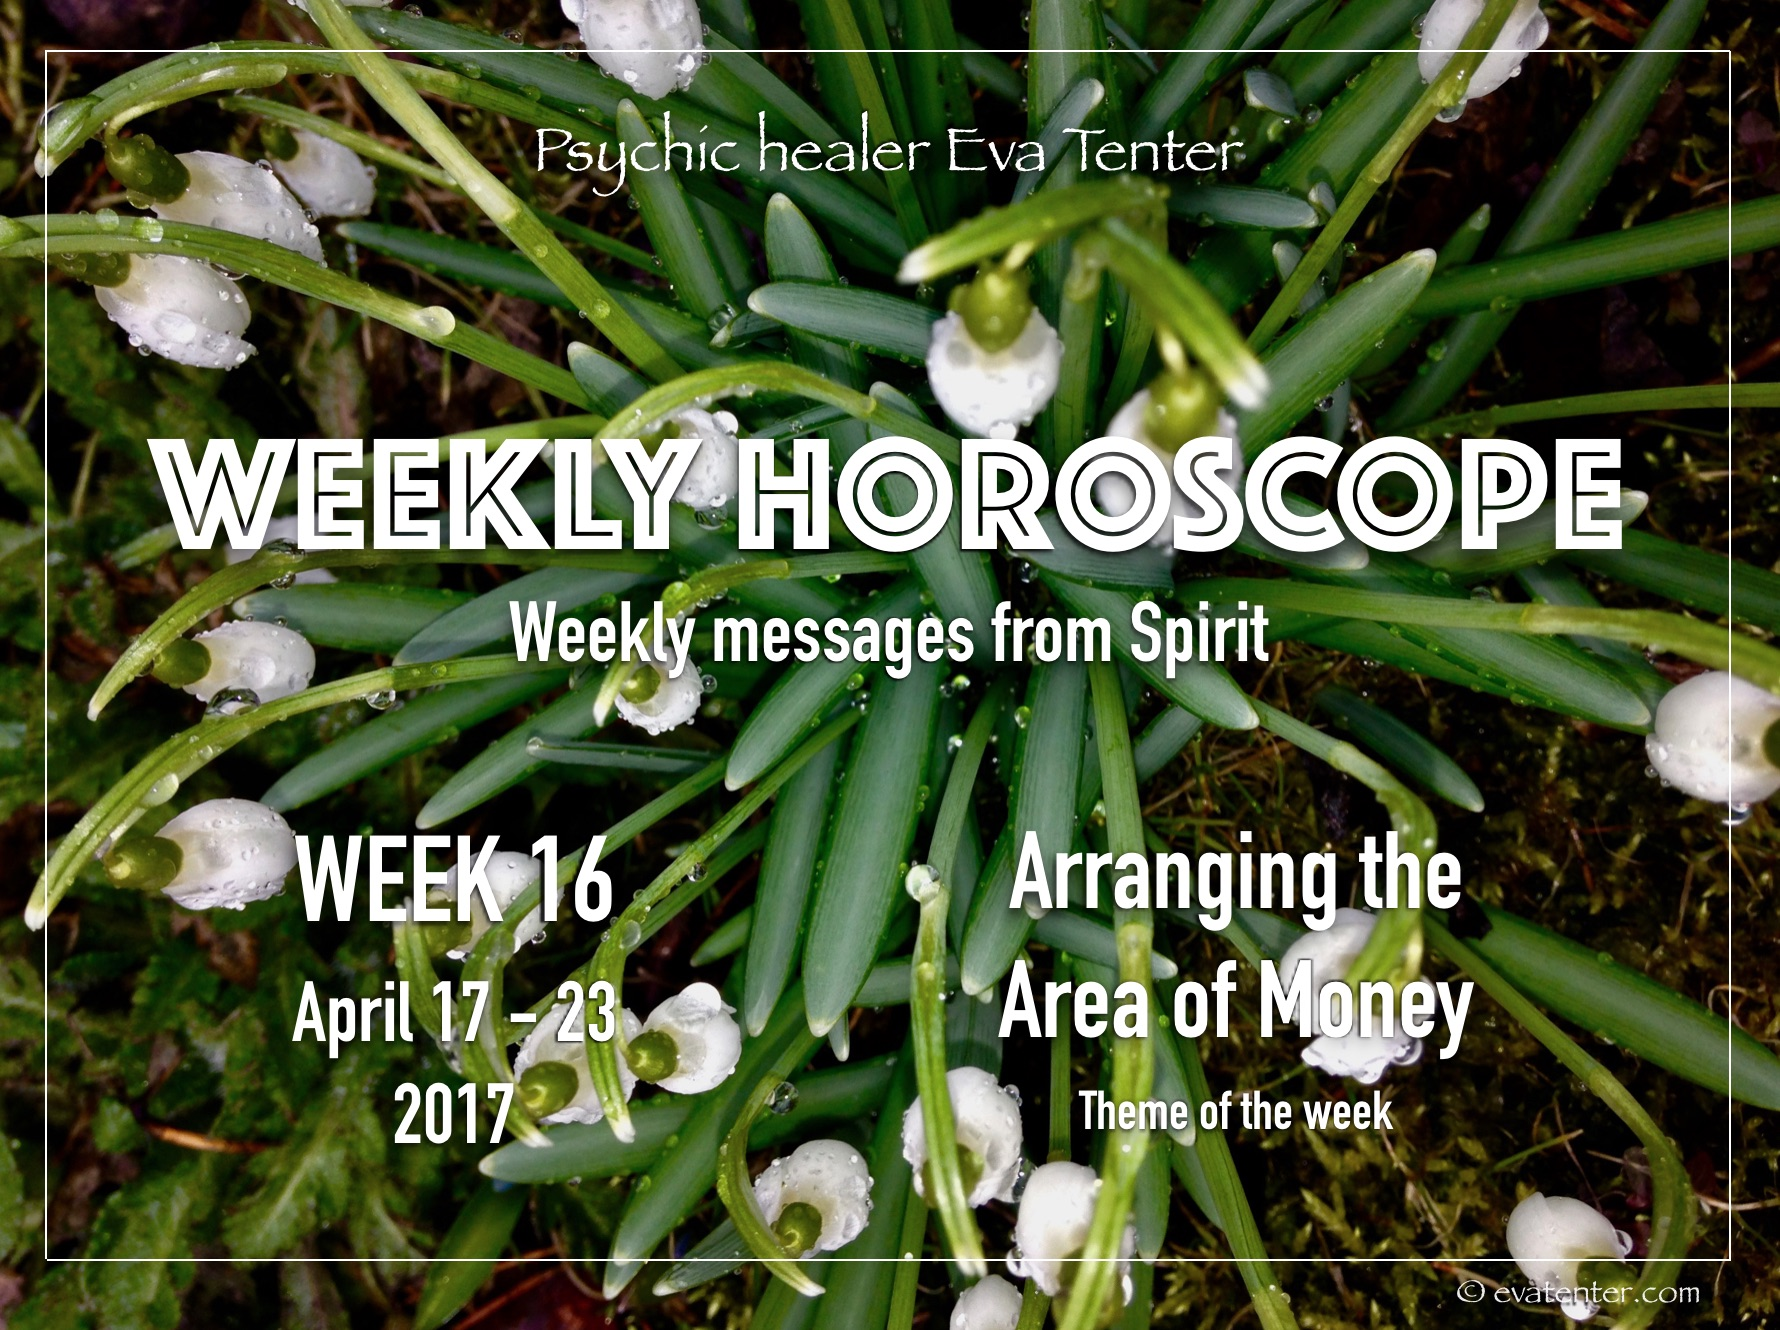 Weekly horoscope April 17-23, 2017 #horoscope